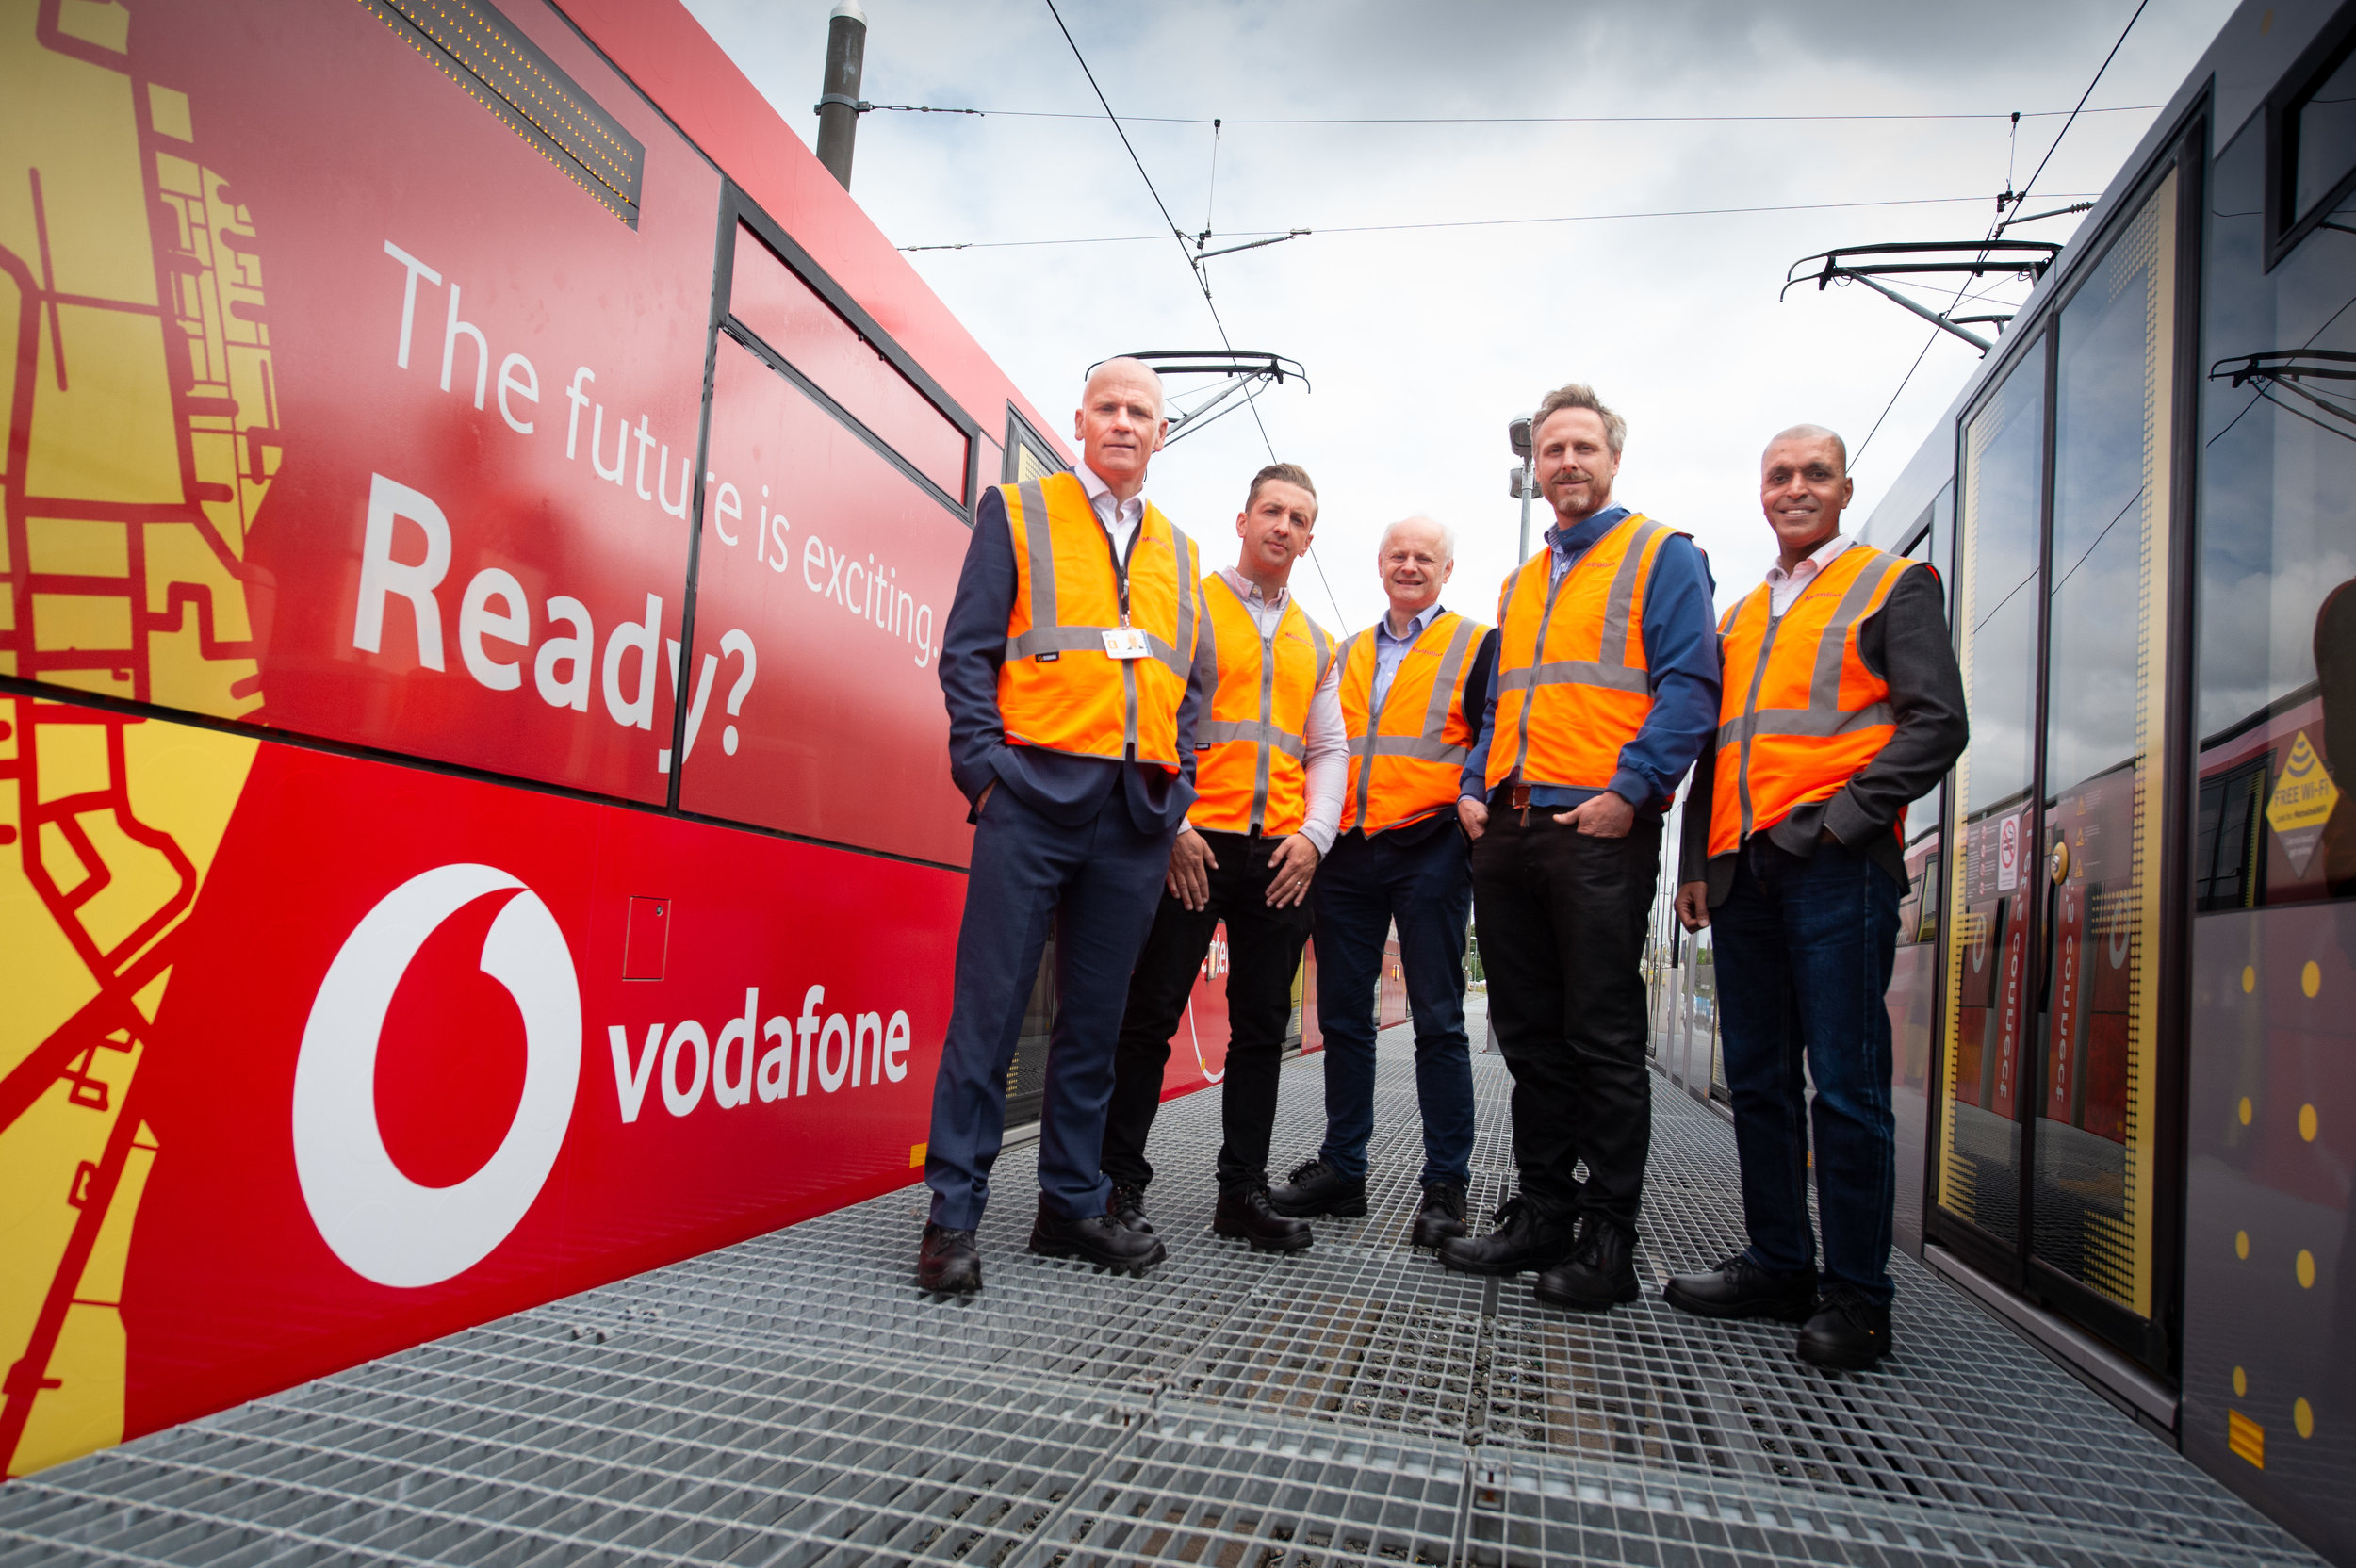 (L to R: Steve Warrener, Finance and Corporate Services Director, Transport for Greater Manchester; Jon Smith, Commercialisation Delivery Manger, Transport for Greater Manchester; Alastair Macdonald, Managing Director, PHAR Partnerships; Nick Williams, Regional Brand Marketing Manager, Vodafone; Rob Mukherjee, North West Regional Chair, Vodafone)